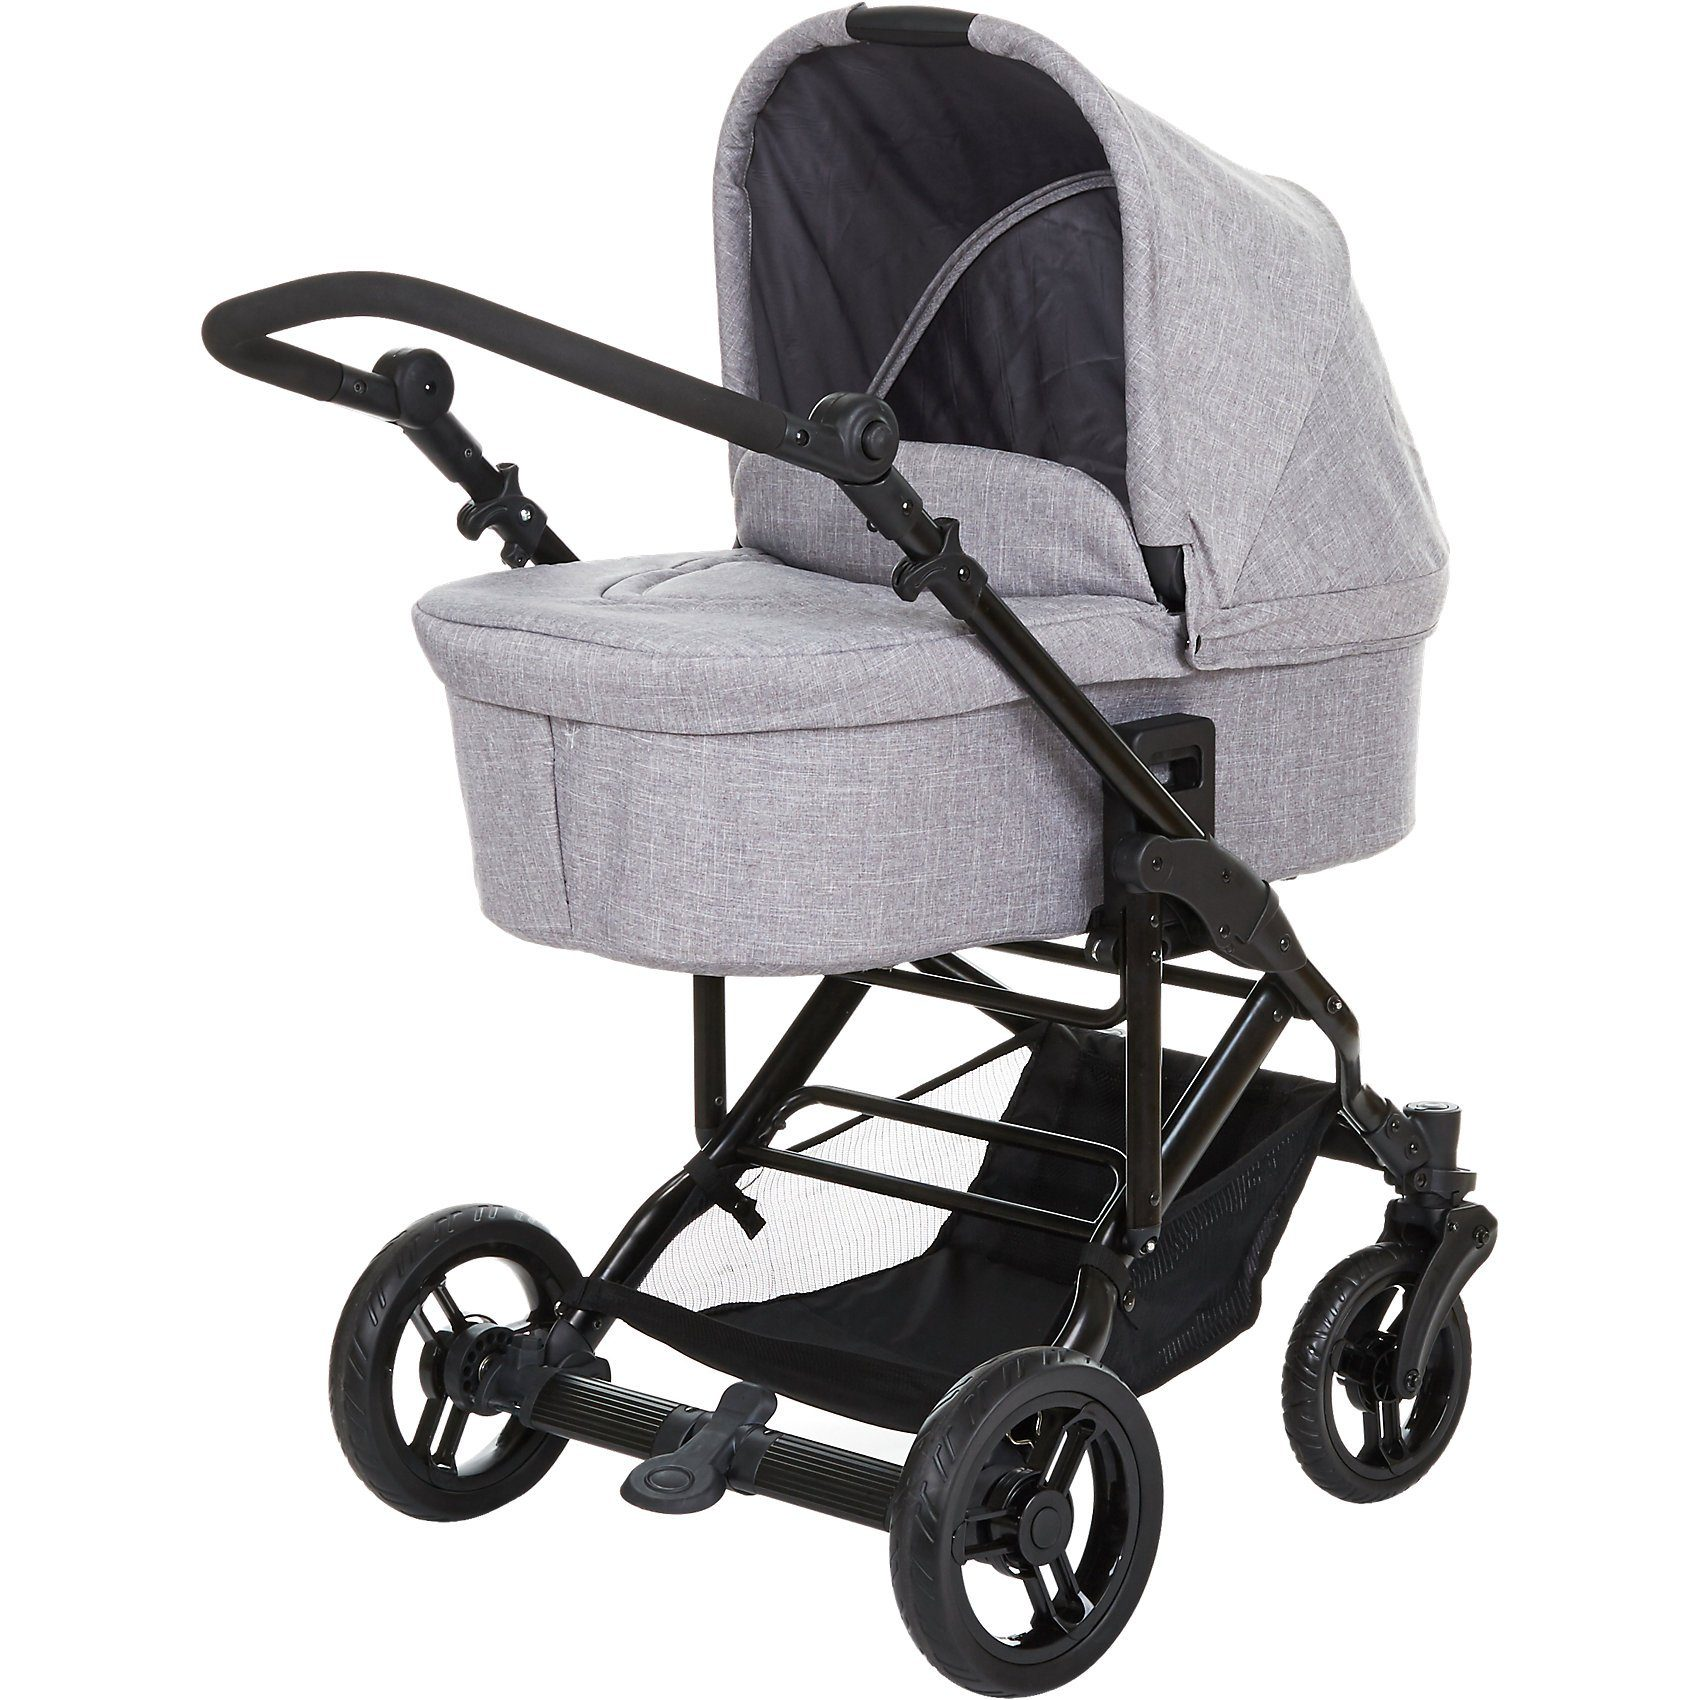 ABC Design Circle Kombi Kinderwagen Como 4 inkl Tragewanne, woven grey